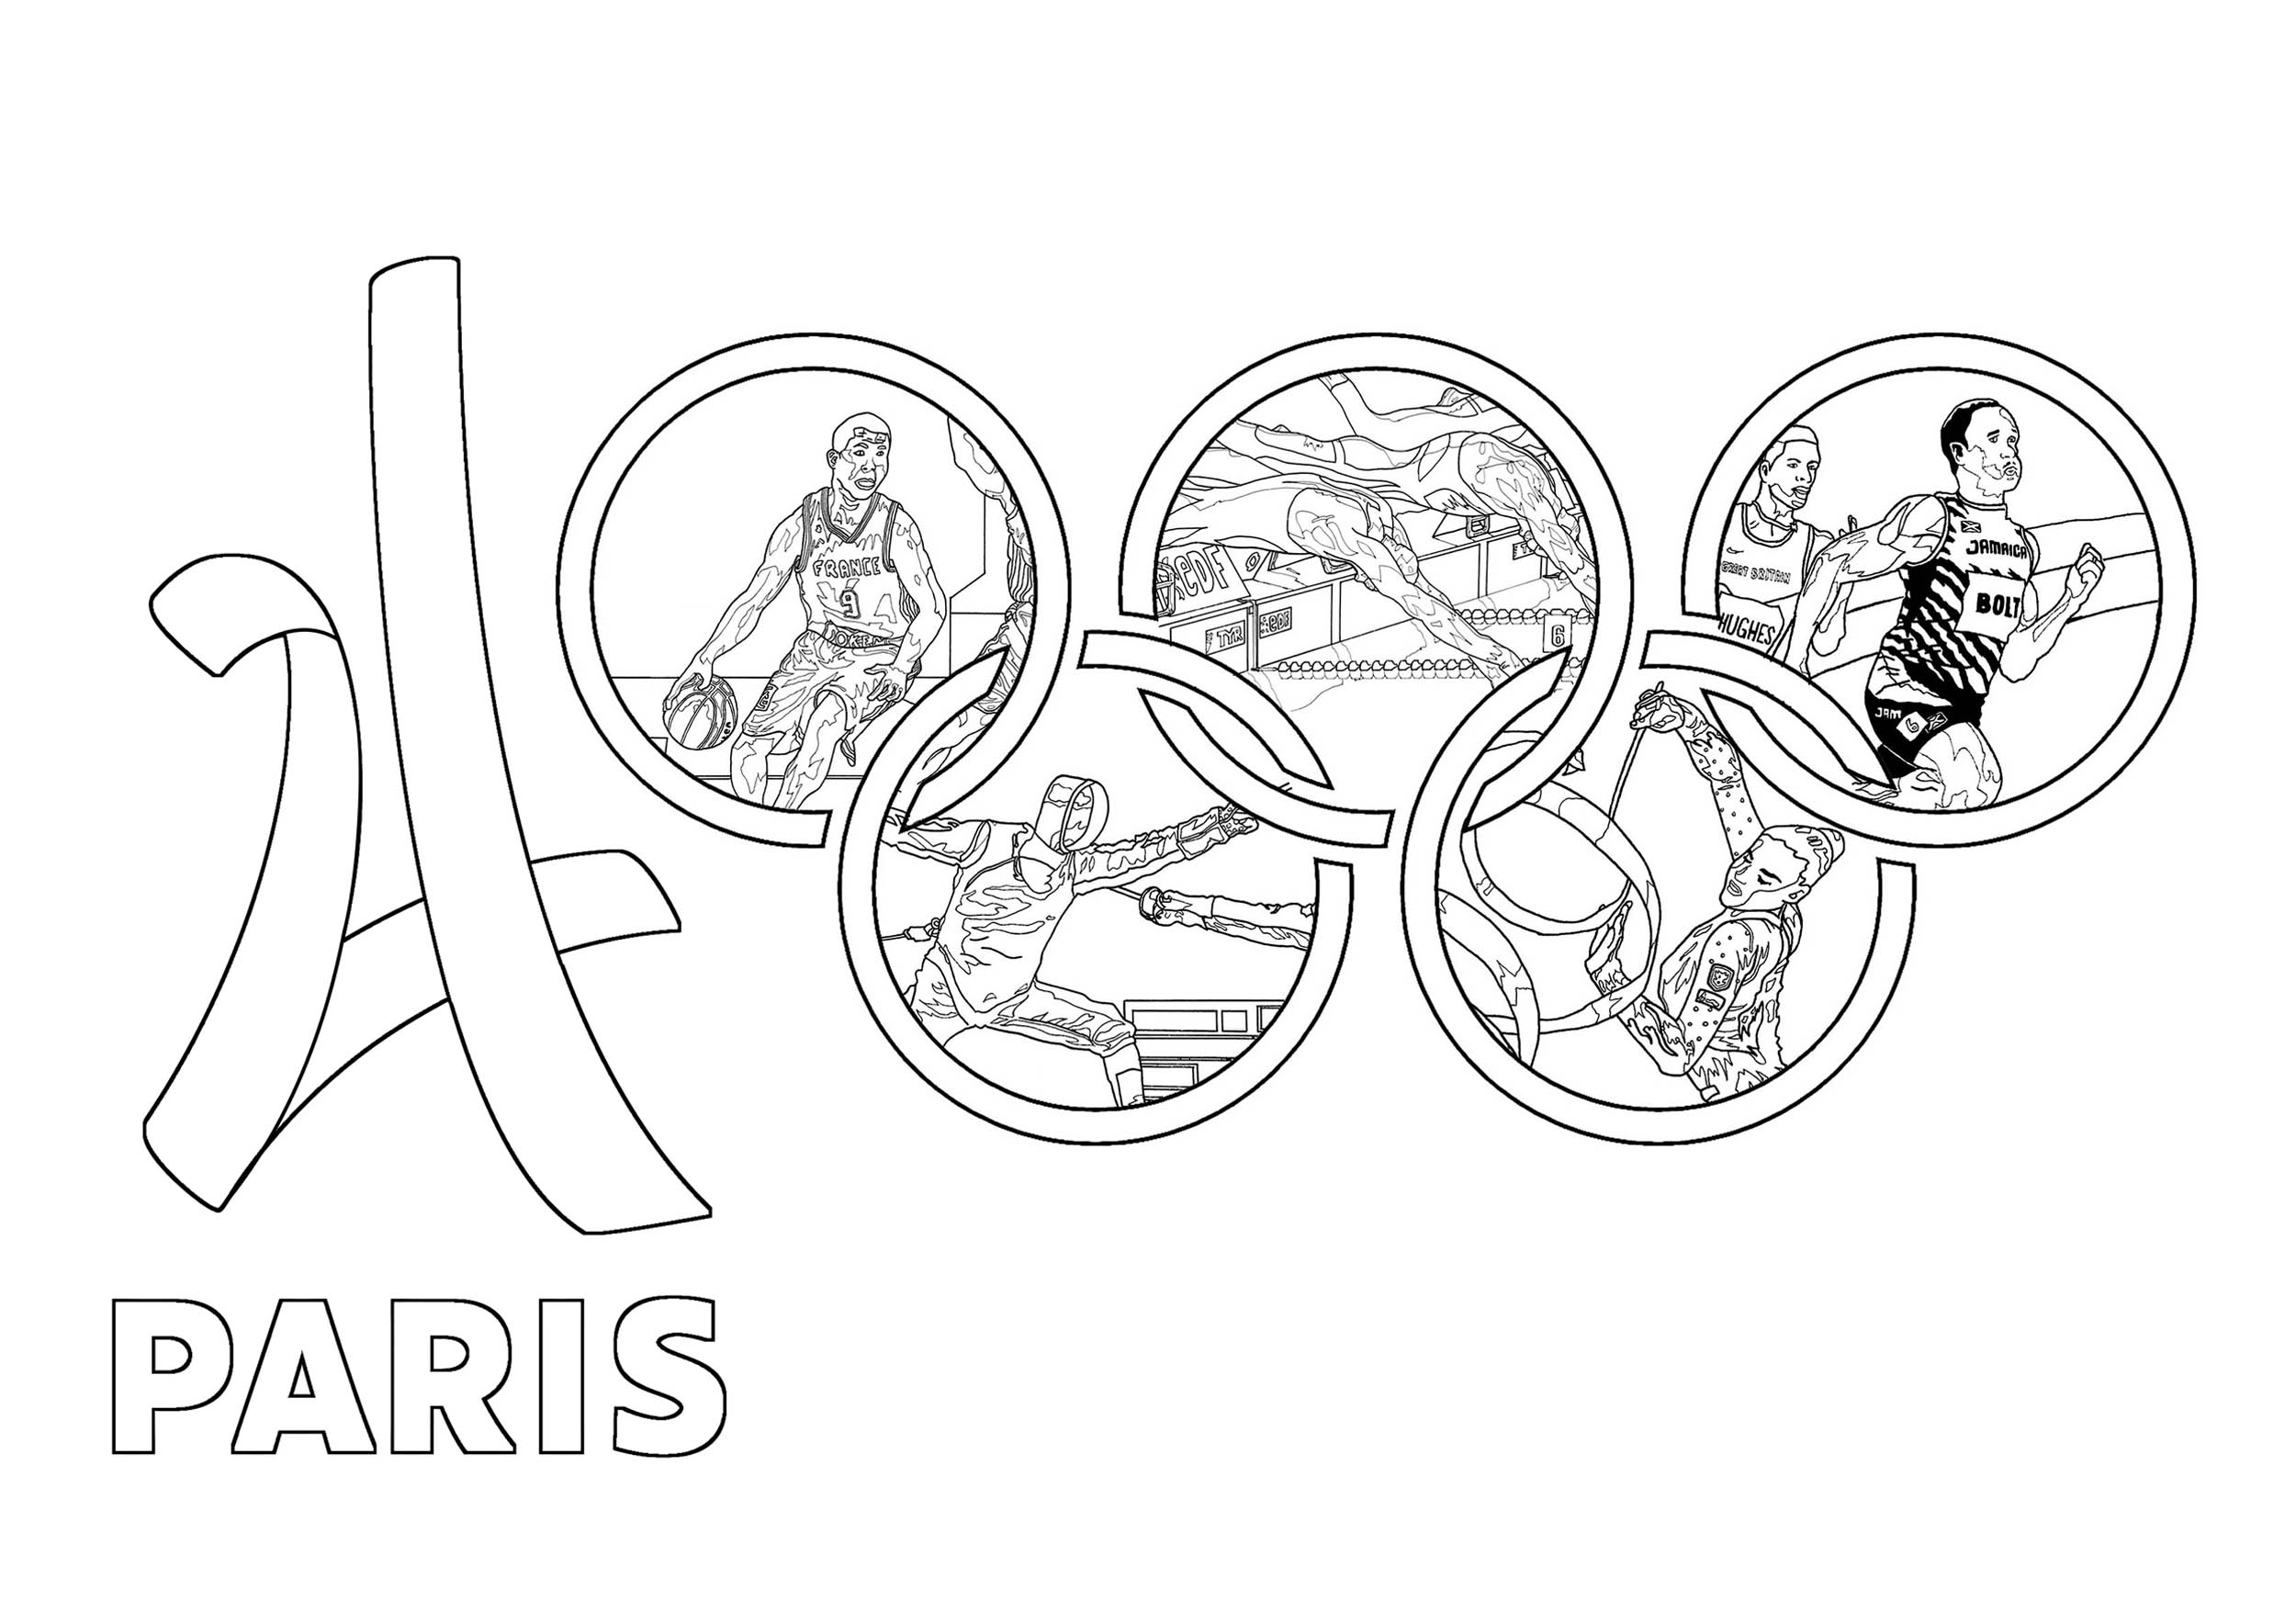 2500x1767 Olympic games paris 2024 Olympic (and sport) coloring pages for